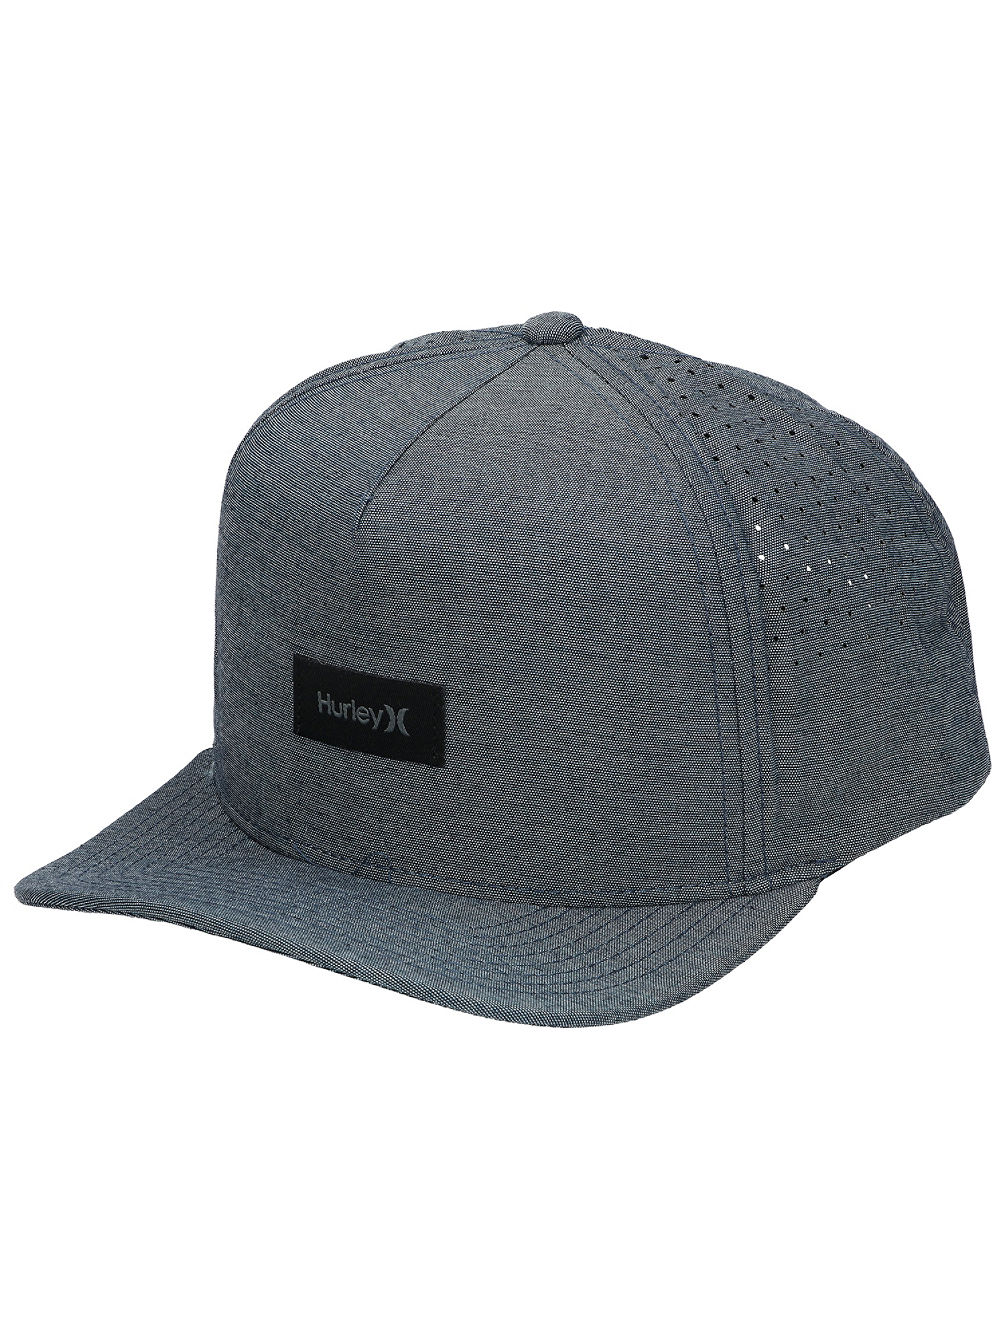 Dri-Fit Staple Cap